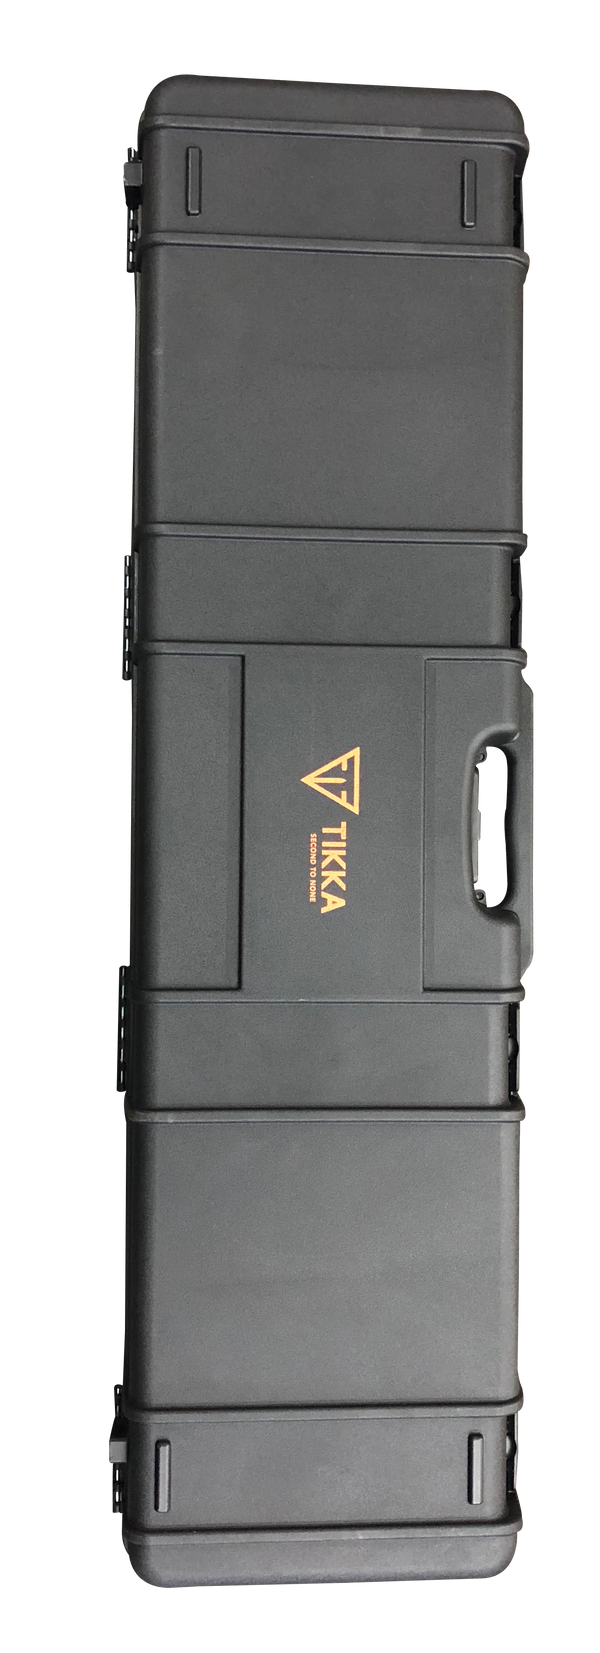 NEGRINI T3X TAC A1 CASE - BLACK - SKU: NEG1640CISYTIKKA, 100-200, ebay, Gun-Bags-Cases, negrini, rifle-bags-cases, Shooting-Gear, specials